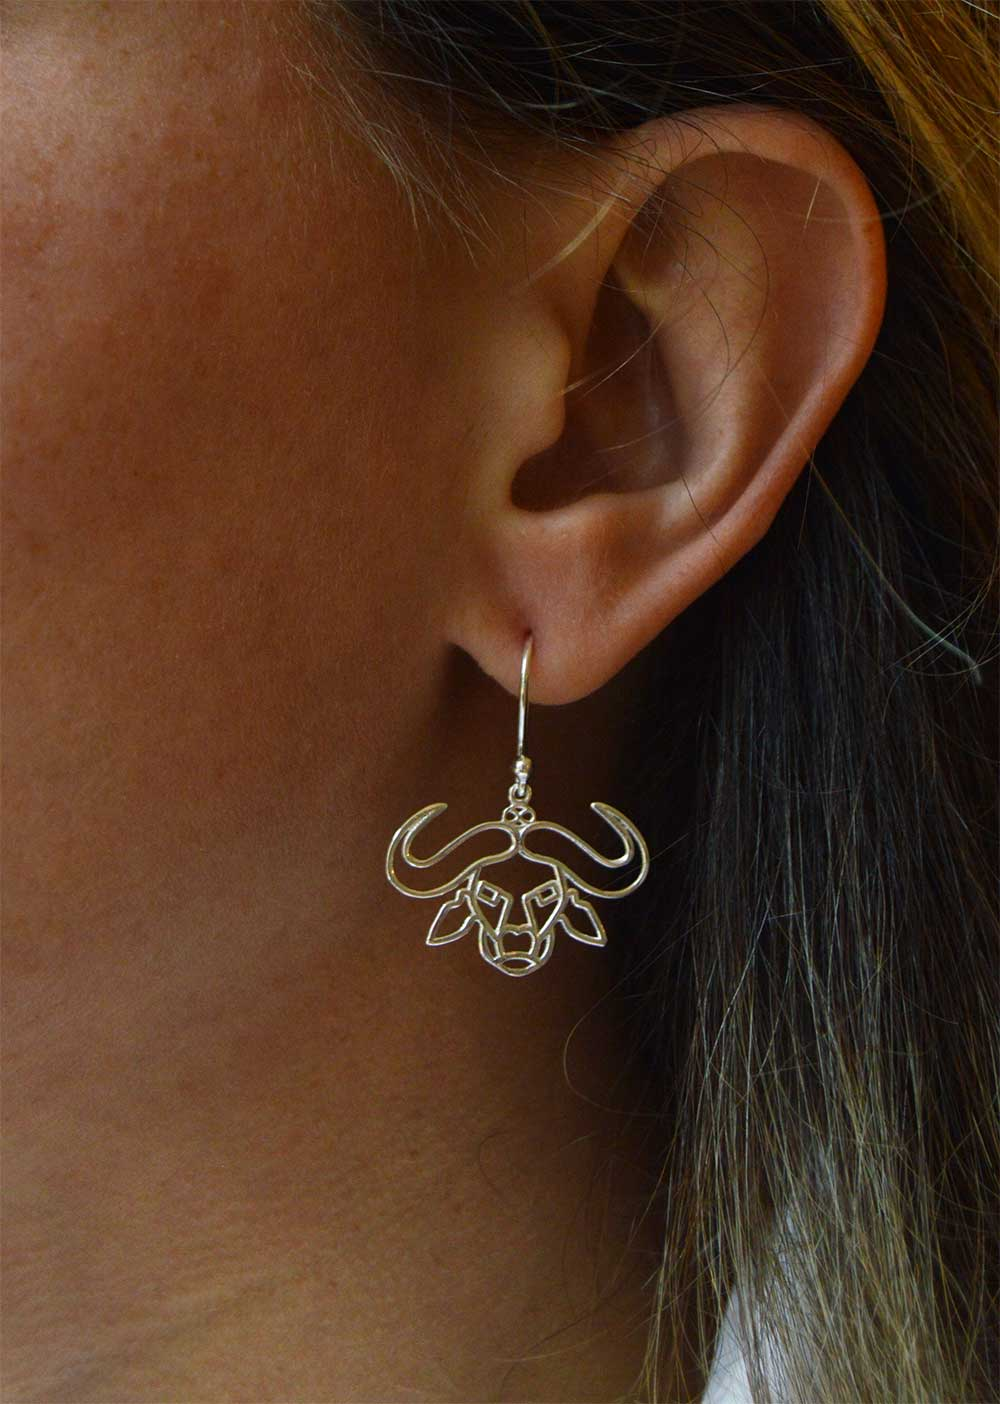 Buffalo Silver Plated Earring Modelled by Shikhazuri